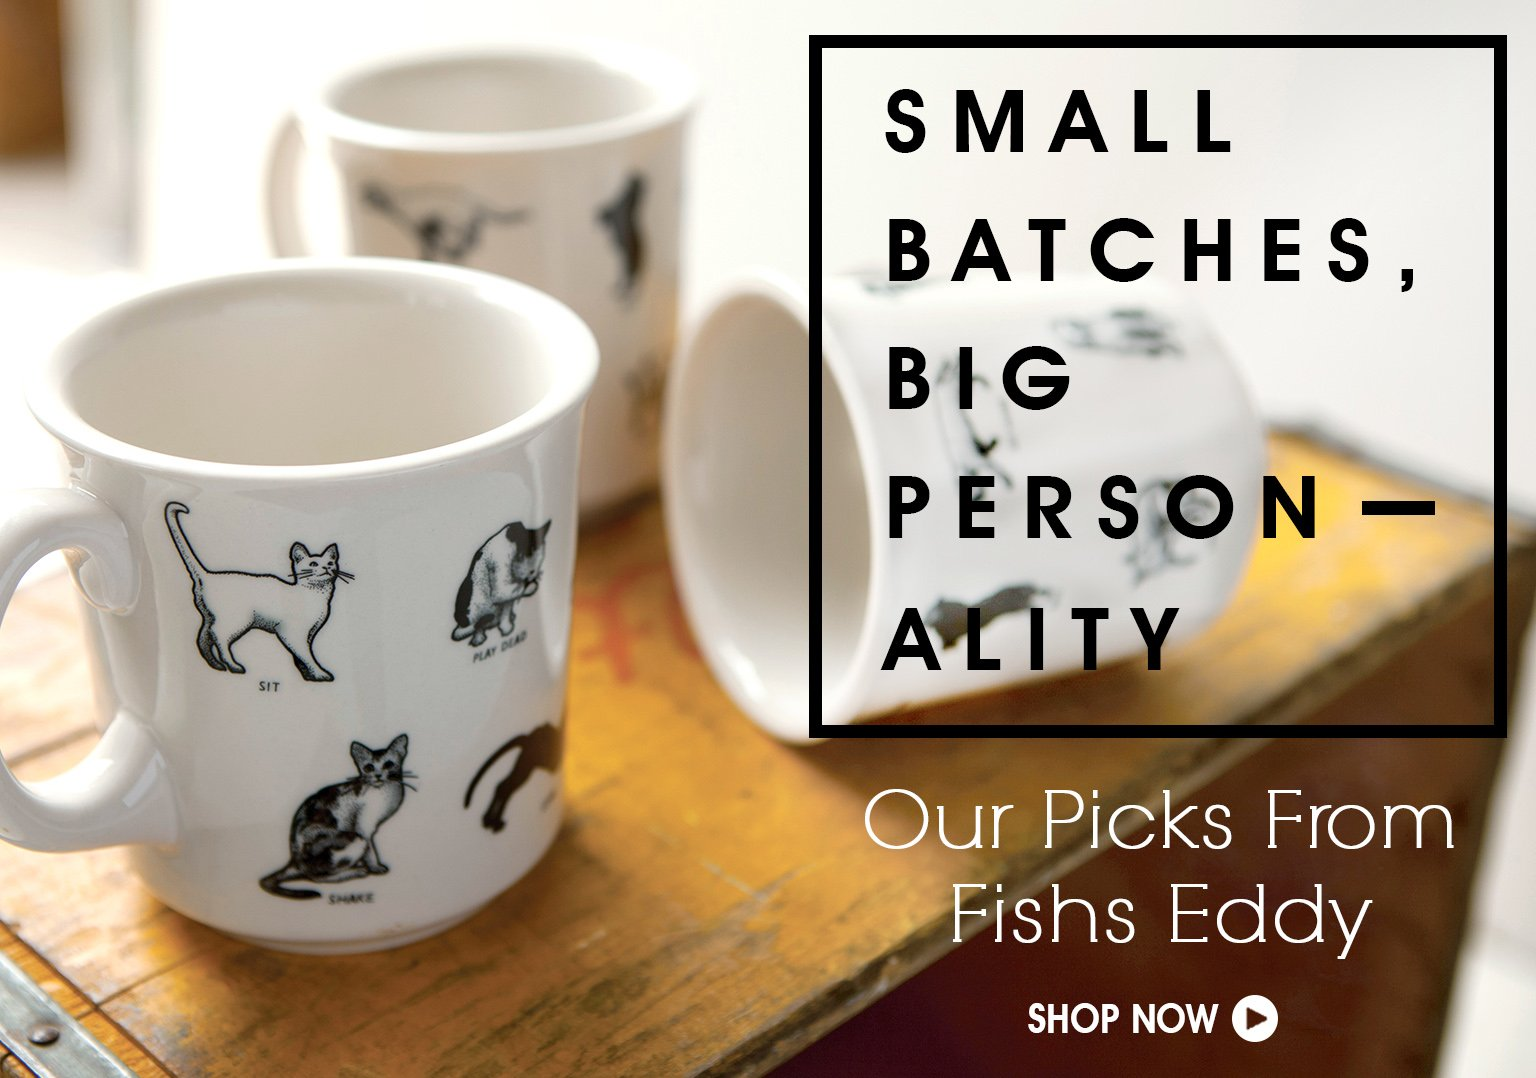 Small Batches, Big Personality. Our Picks From Fish Eddy & More.